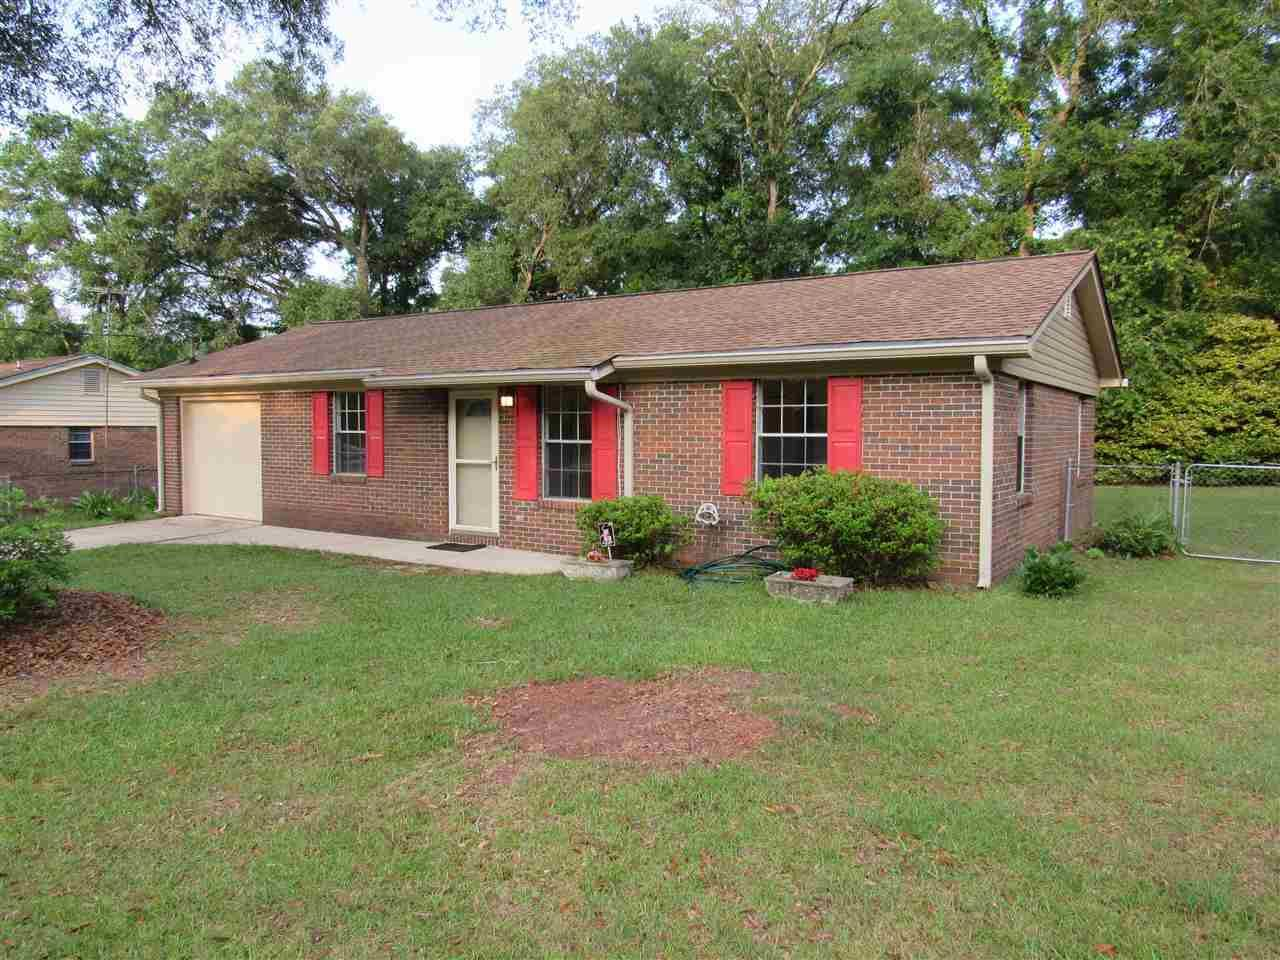 5656 Old Hickory Lane, Tallahassee, FL 32303 - MLS#: 331719